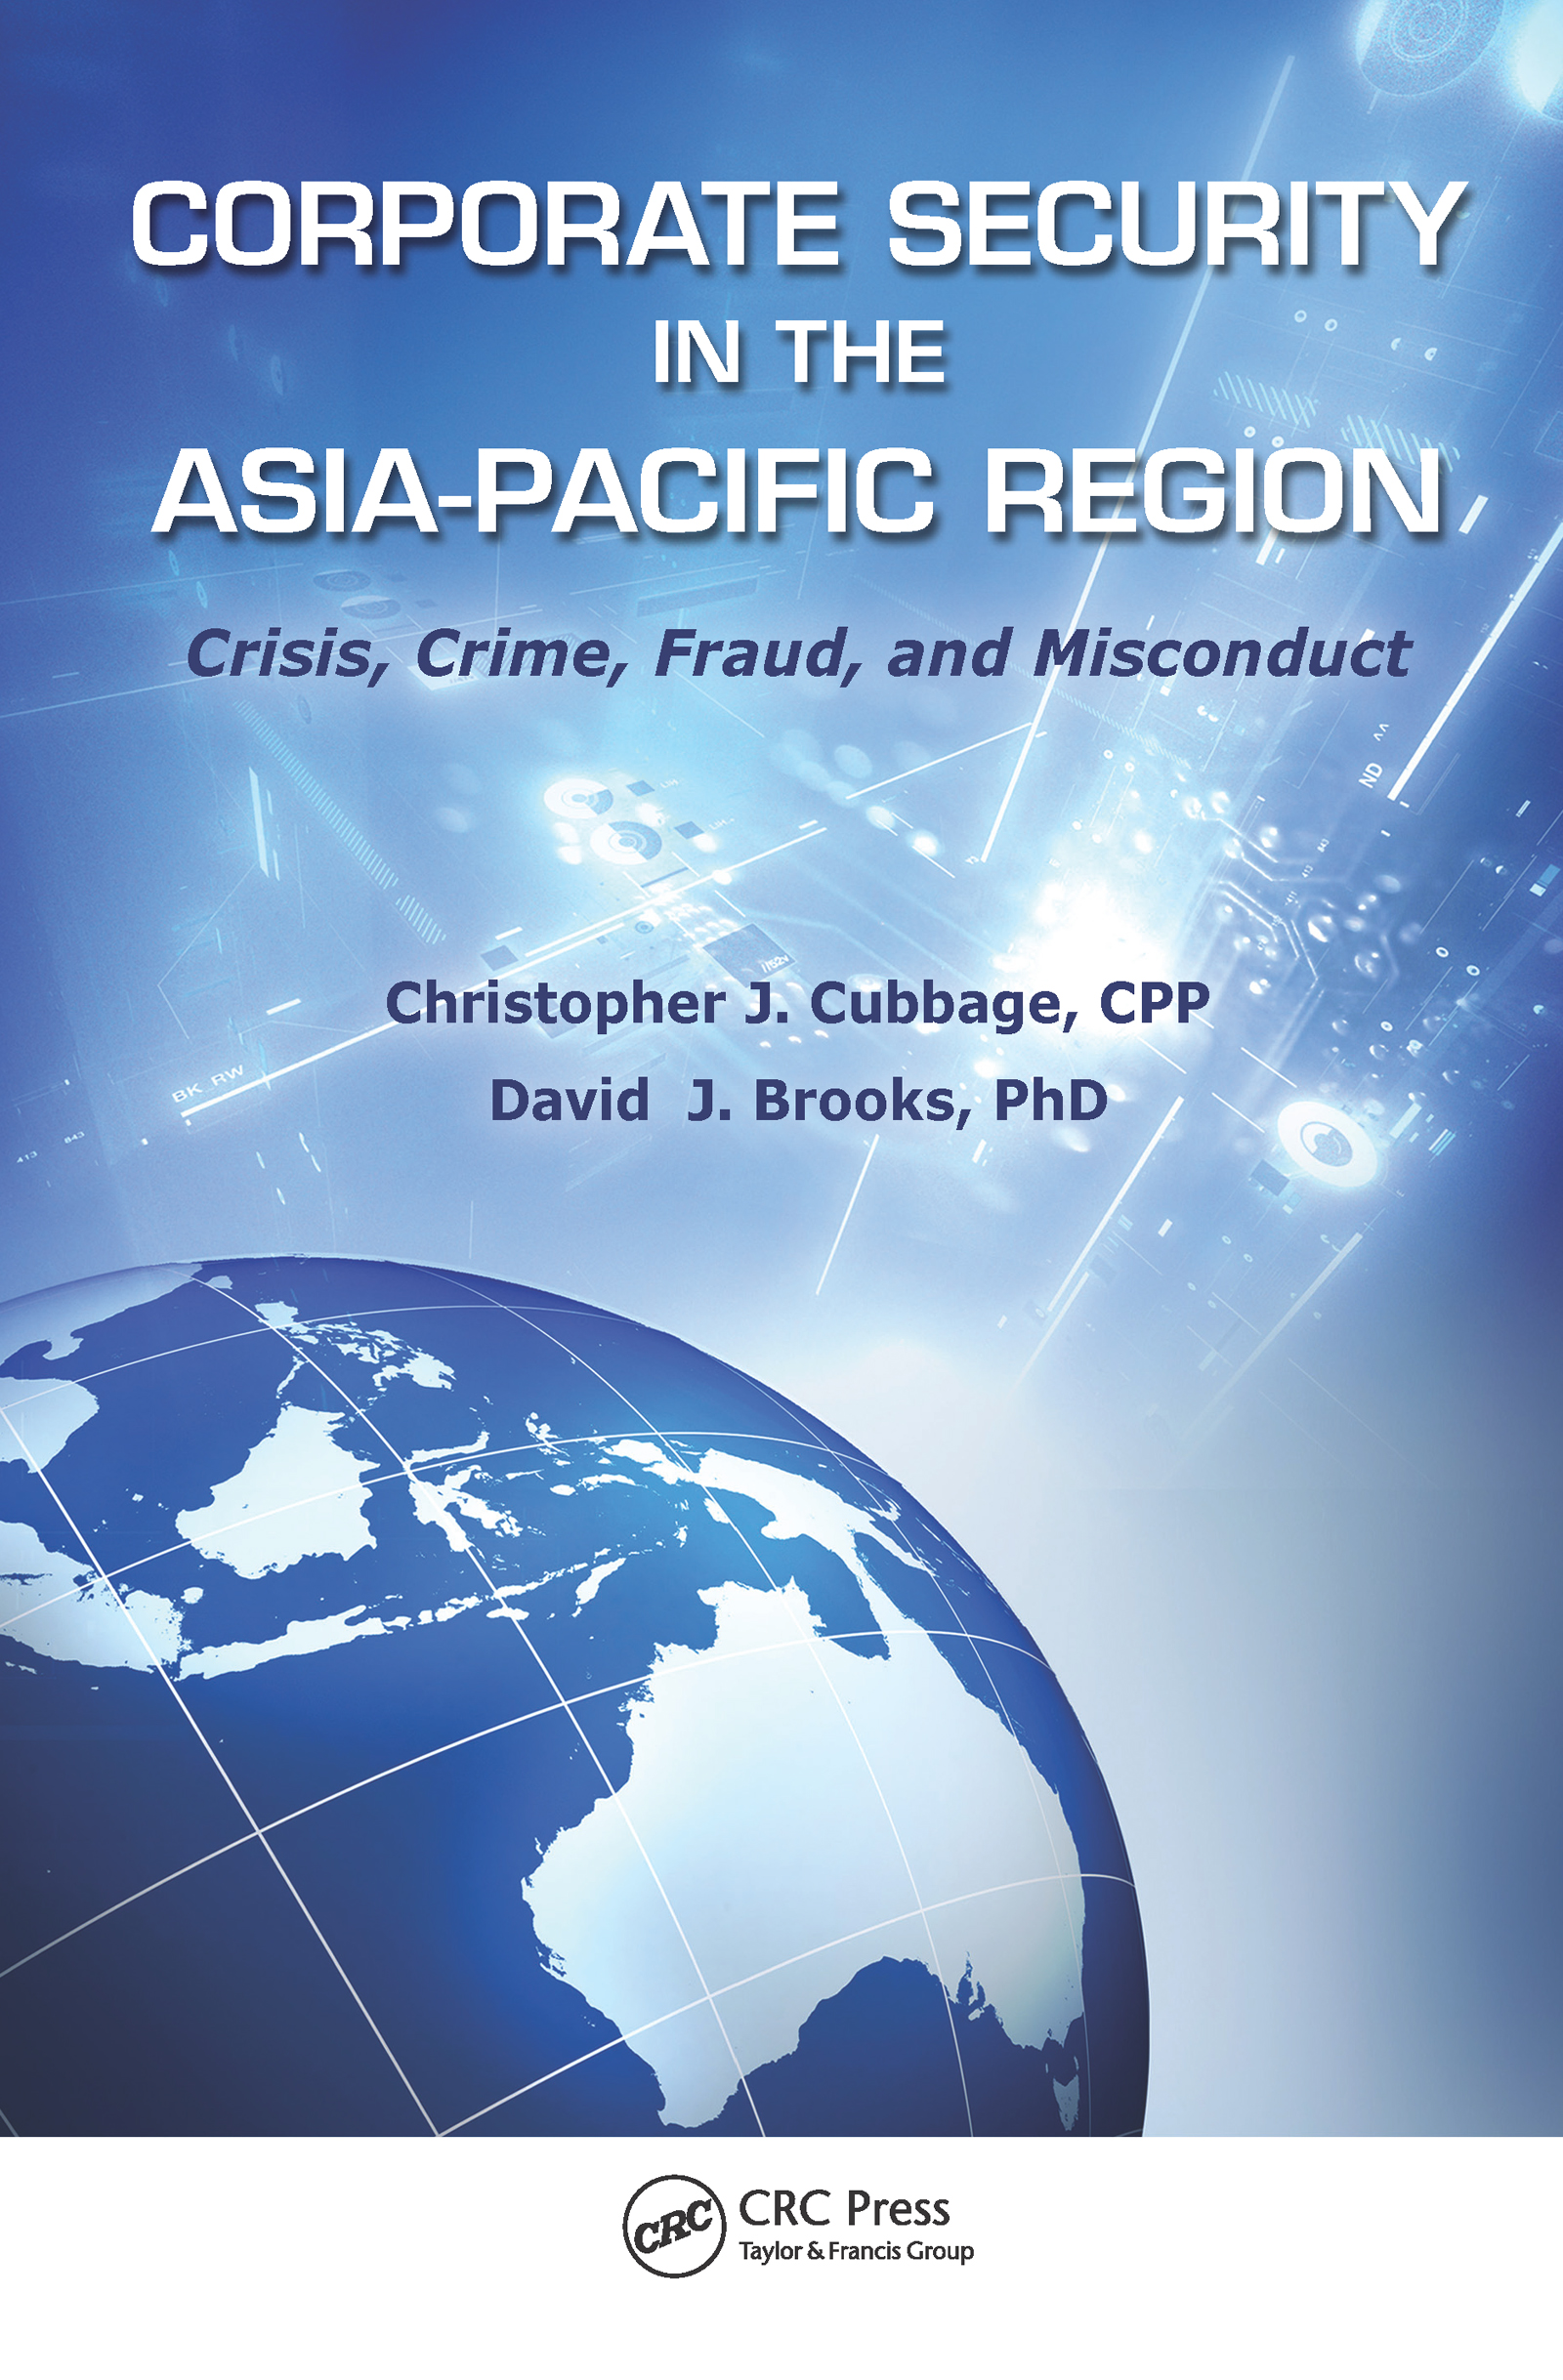 Corporate Security in the Asia-Pacific Region: Crisis, Crime, Fraud, and Misconduct book cover